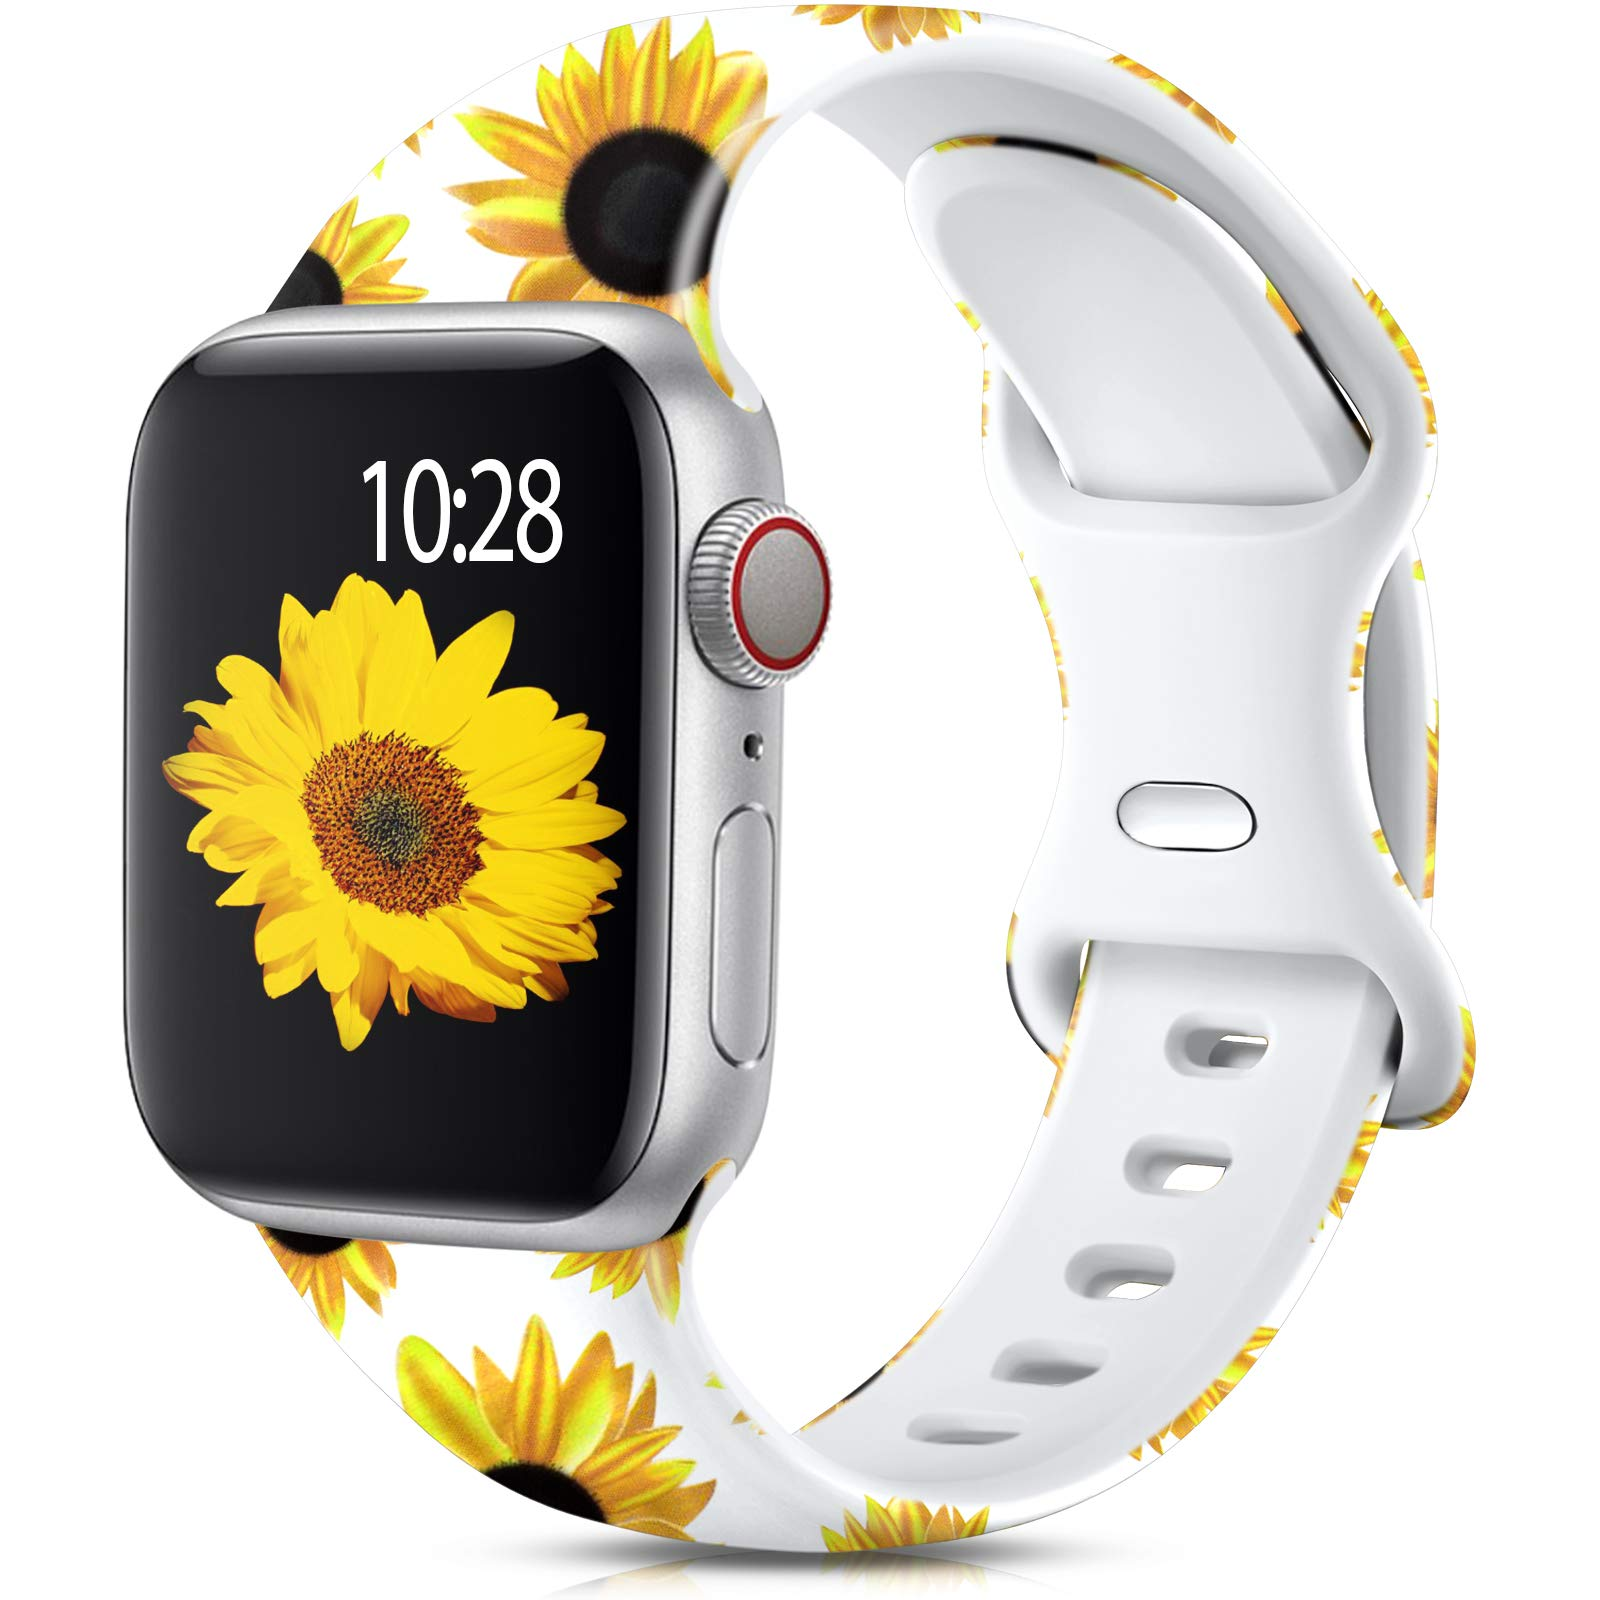 Muranne Compatible with Apple Watch Band SE 44mm 42mm for Women Womens Stylish Pattern Fashion Printed Soft Silicone Replacement Wristband for iWatch Series 6 5 4 3 2 1, Sunflower, S/M